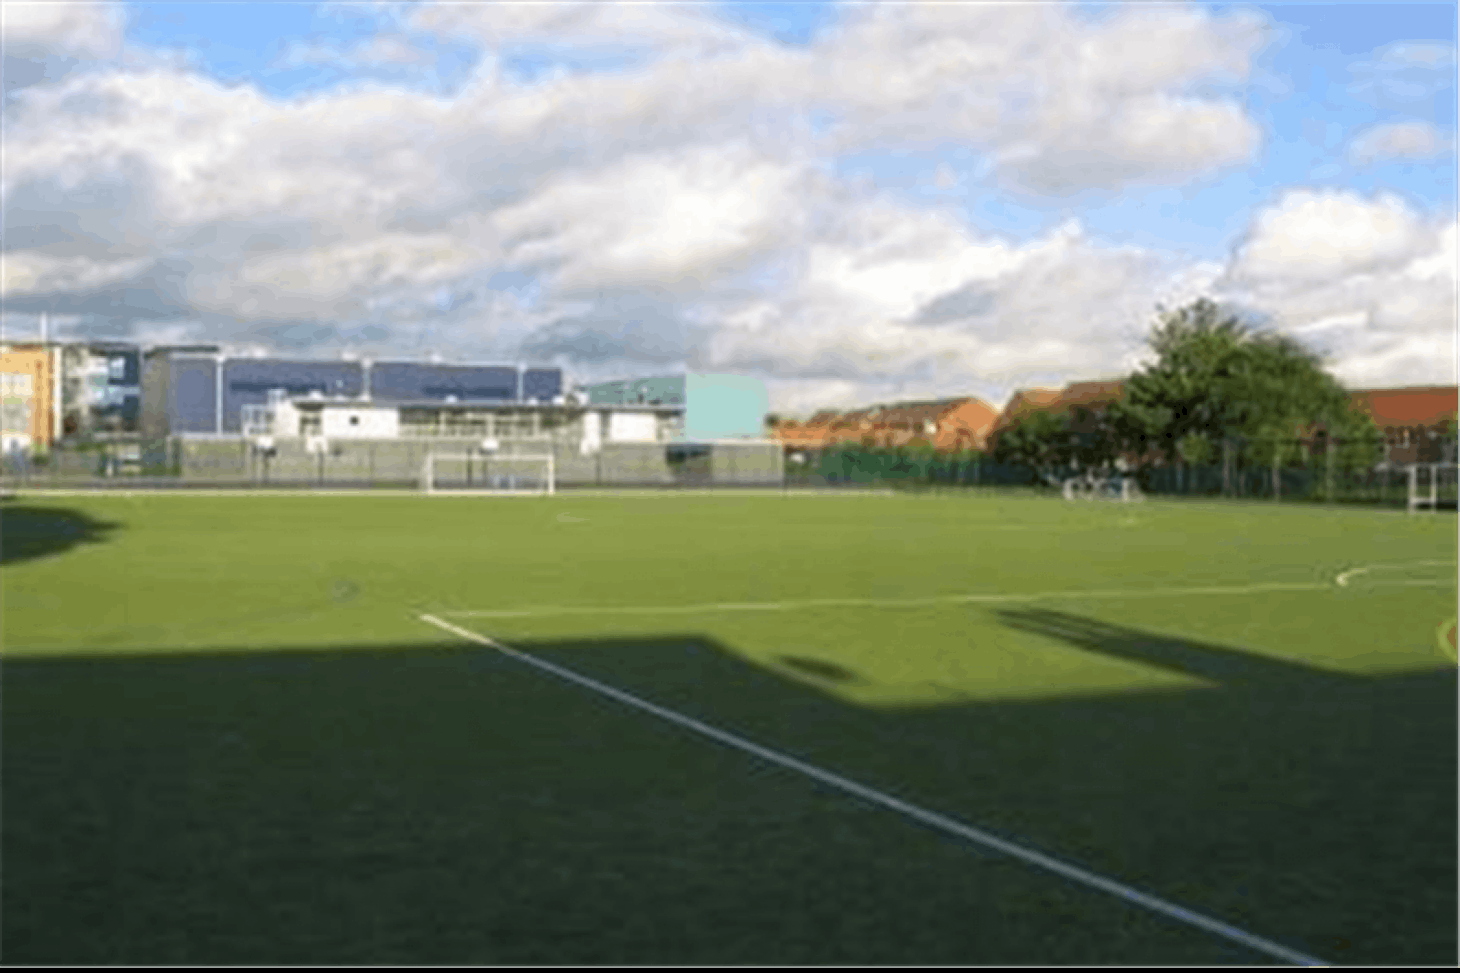 City of London Academy 7 a side | Astroturf football pitch